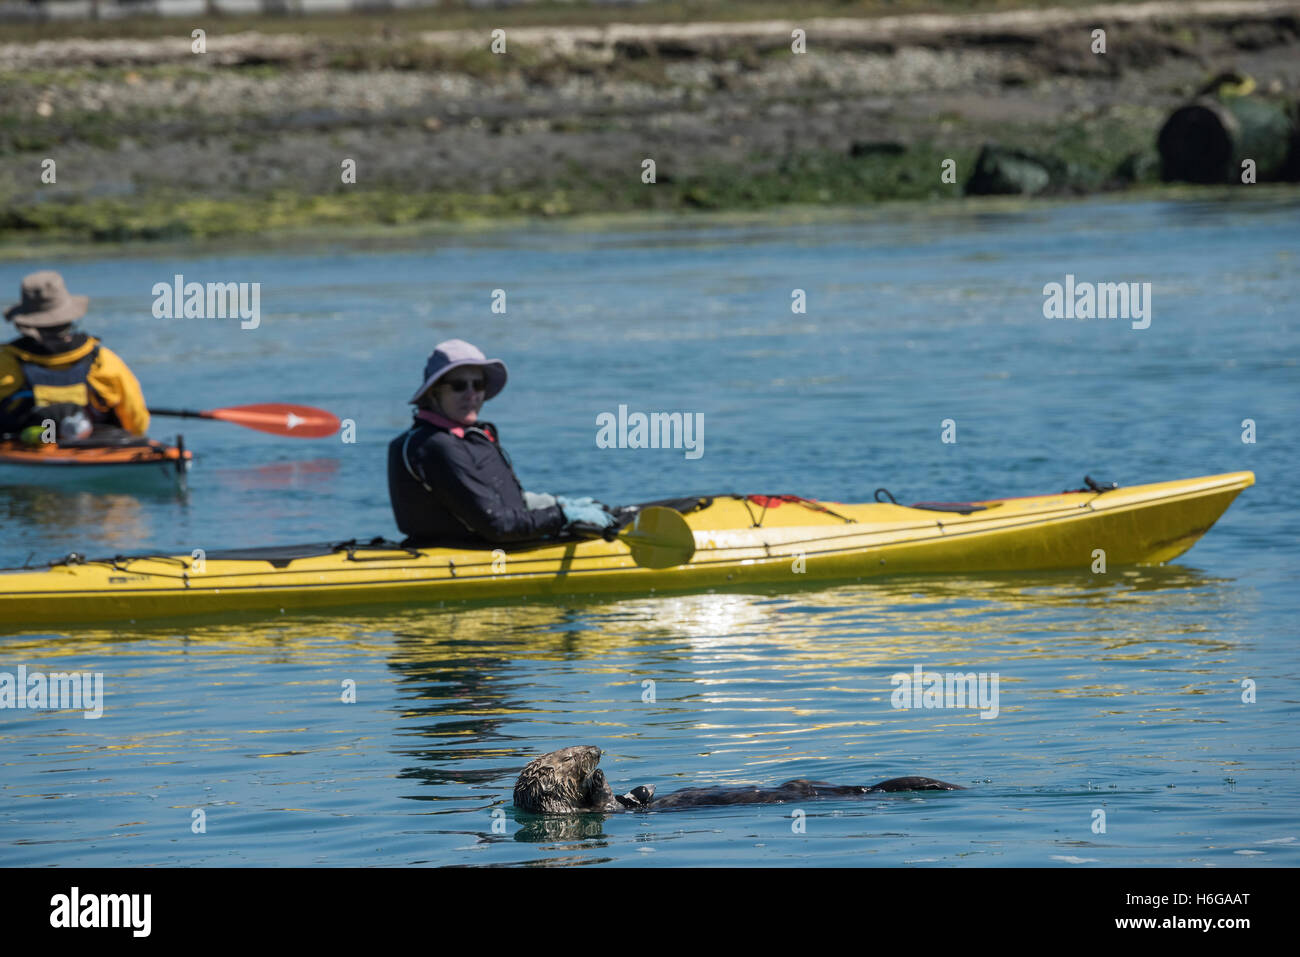 California sea otter, Enhydra lutris nereis ( threatened species ), eats a large shellfish, unconcerned as a kayak - Stock Image